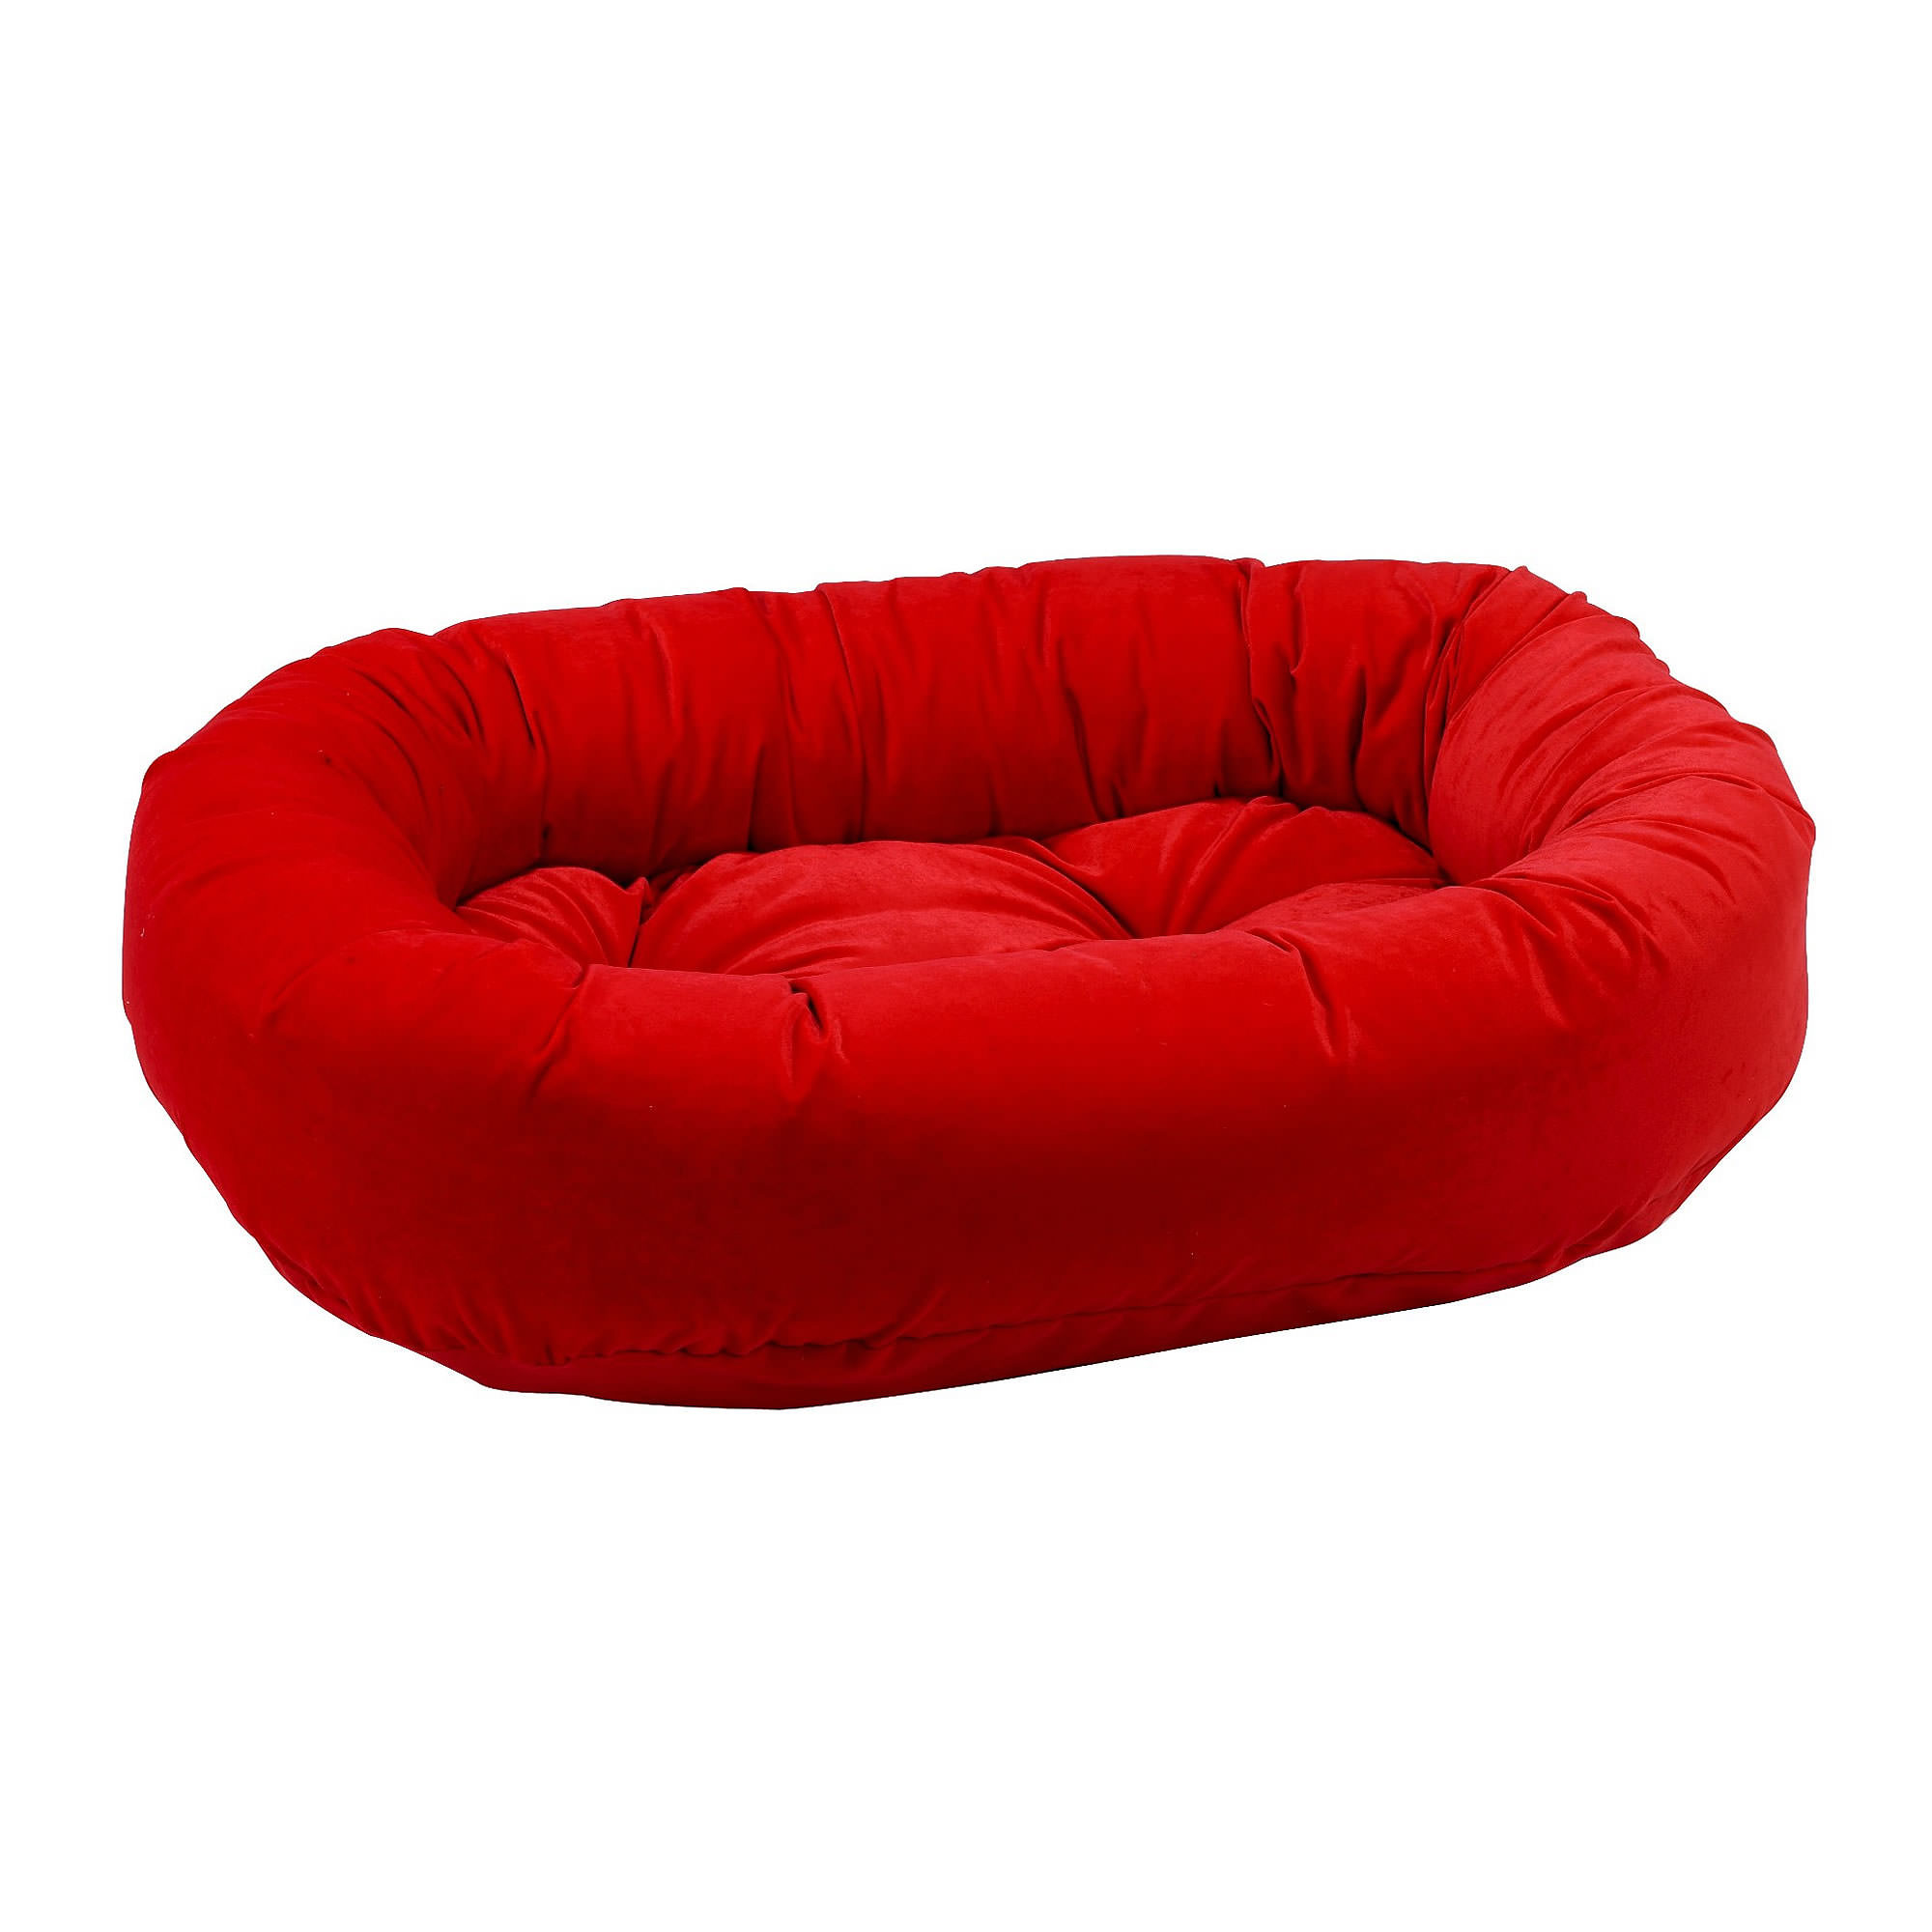 Bowsers Diamond Collection Donut Pet Bed